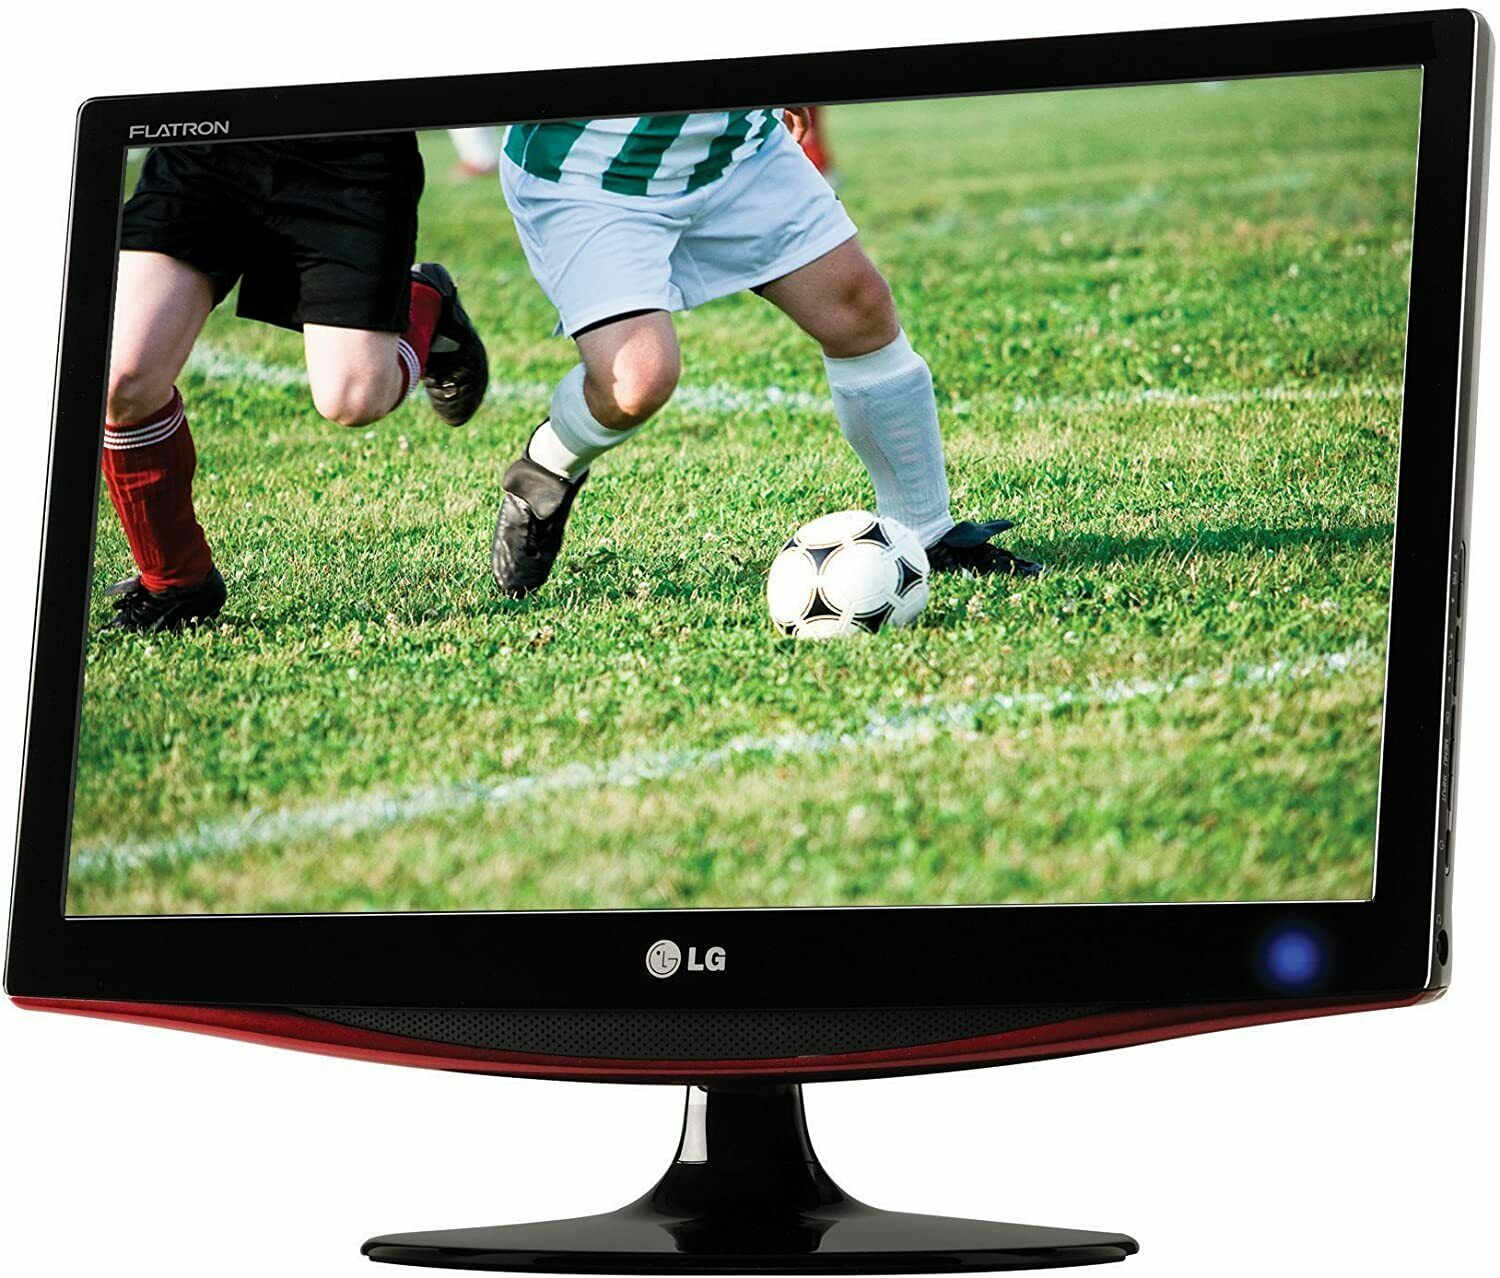 "Primary image for LG 22"" inch Widescreen TV / Monitor LG M227WD. Full HD 1080, HDMI x2, DVI-D, VGA"